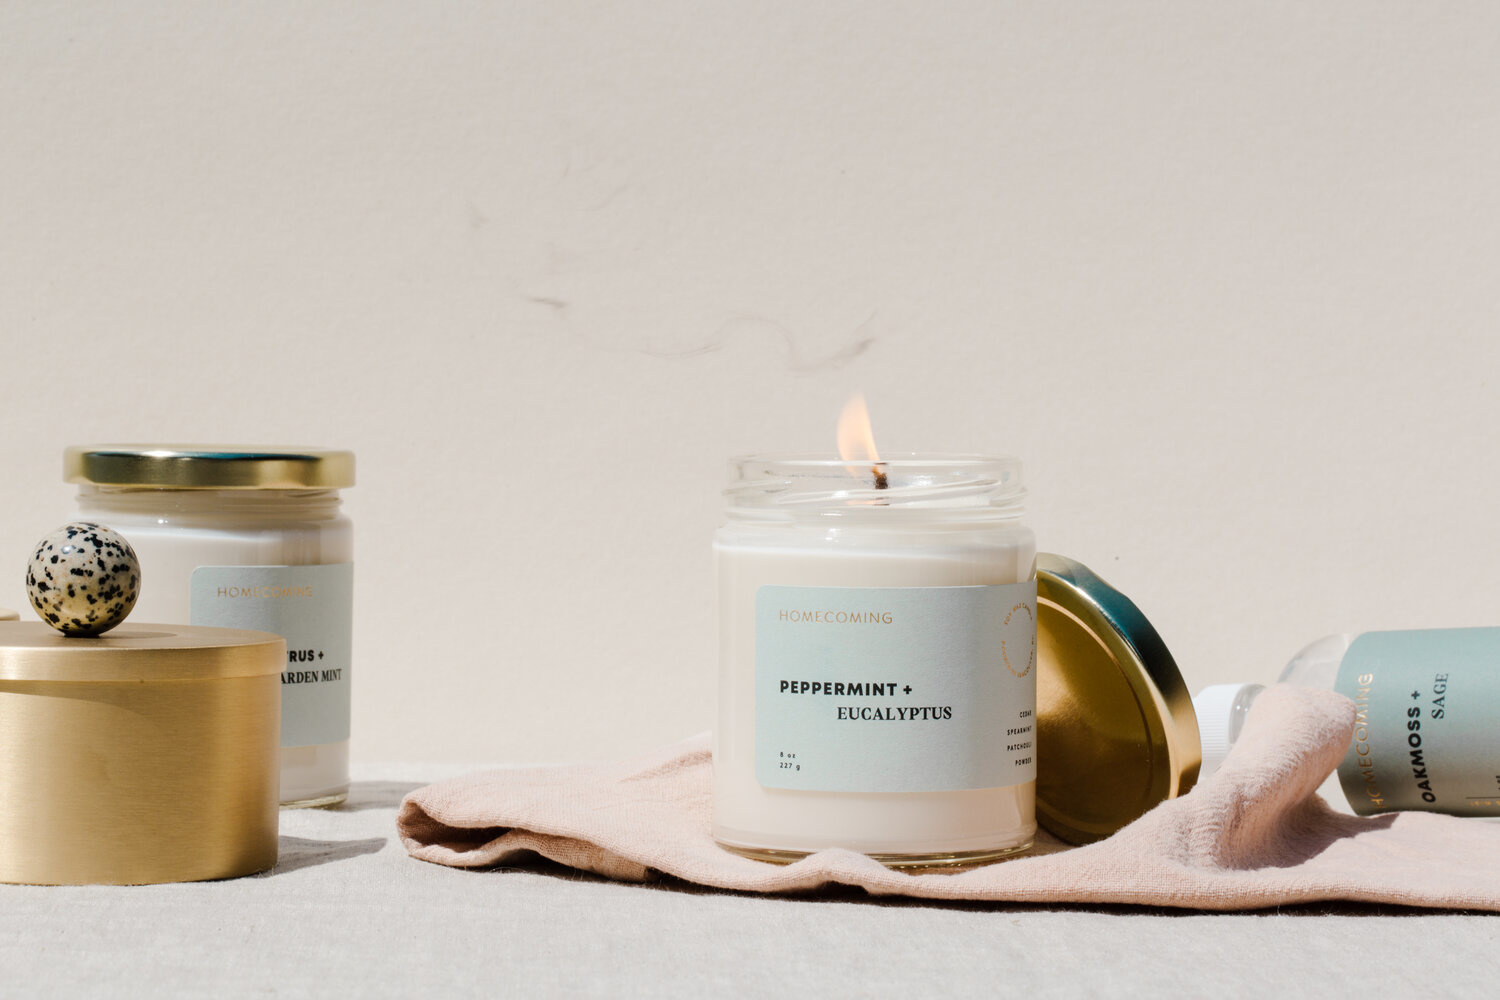 Homecoming Peppermint + Eucalyptus Soy Candle